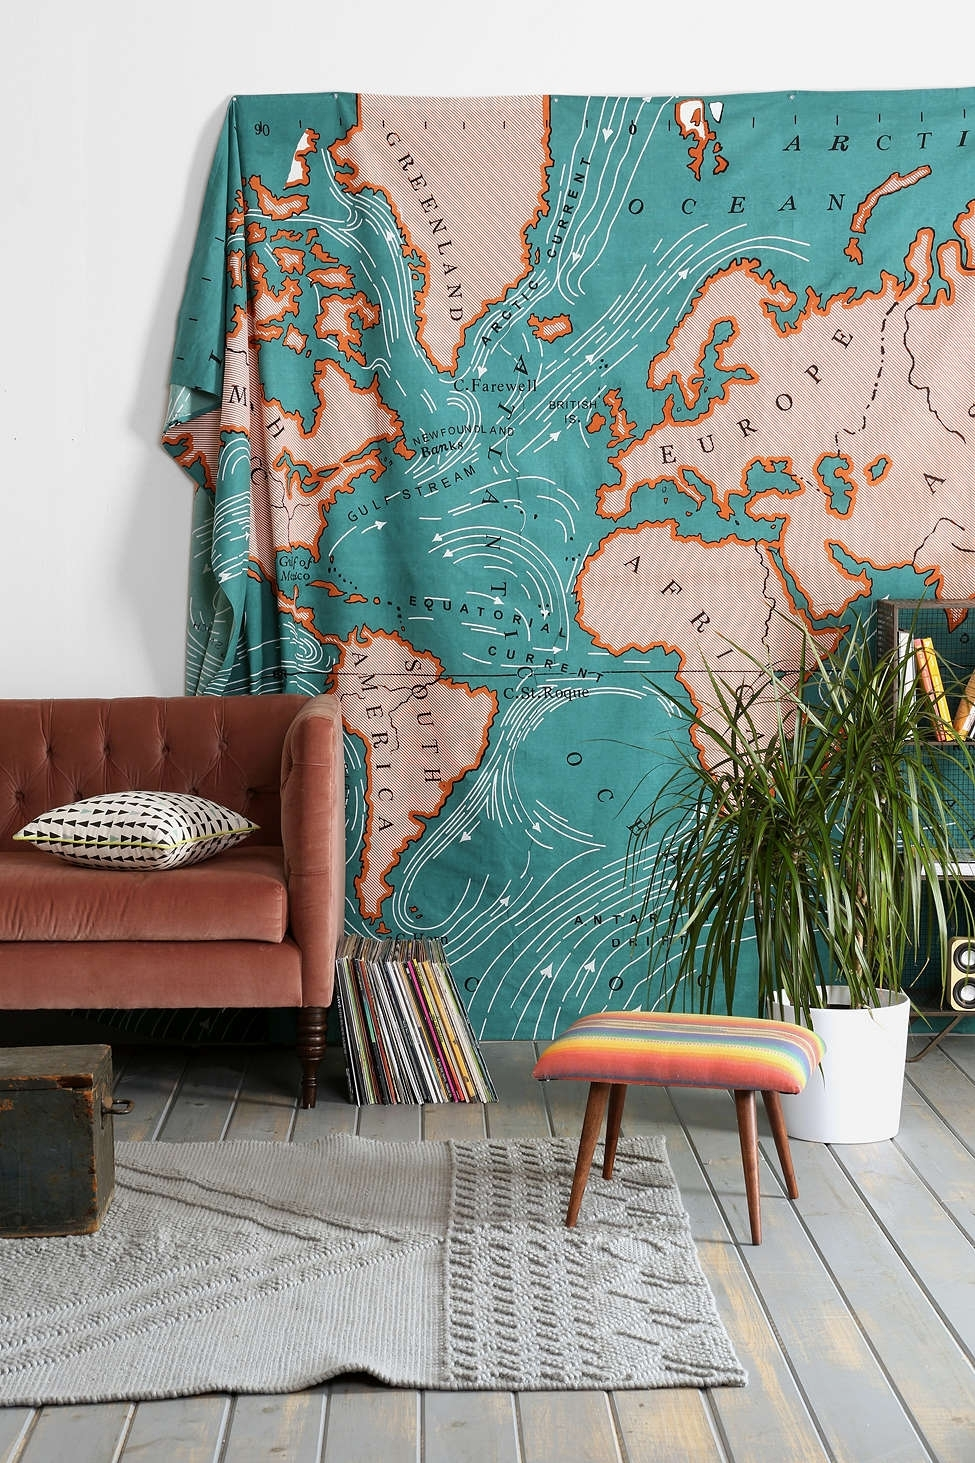 Spice Up Your Space: 20 Living Room Wall Decor Ideas Throughout Best And Newest Fabric Wall Art Urban Outfitters (View 2 of 15)